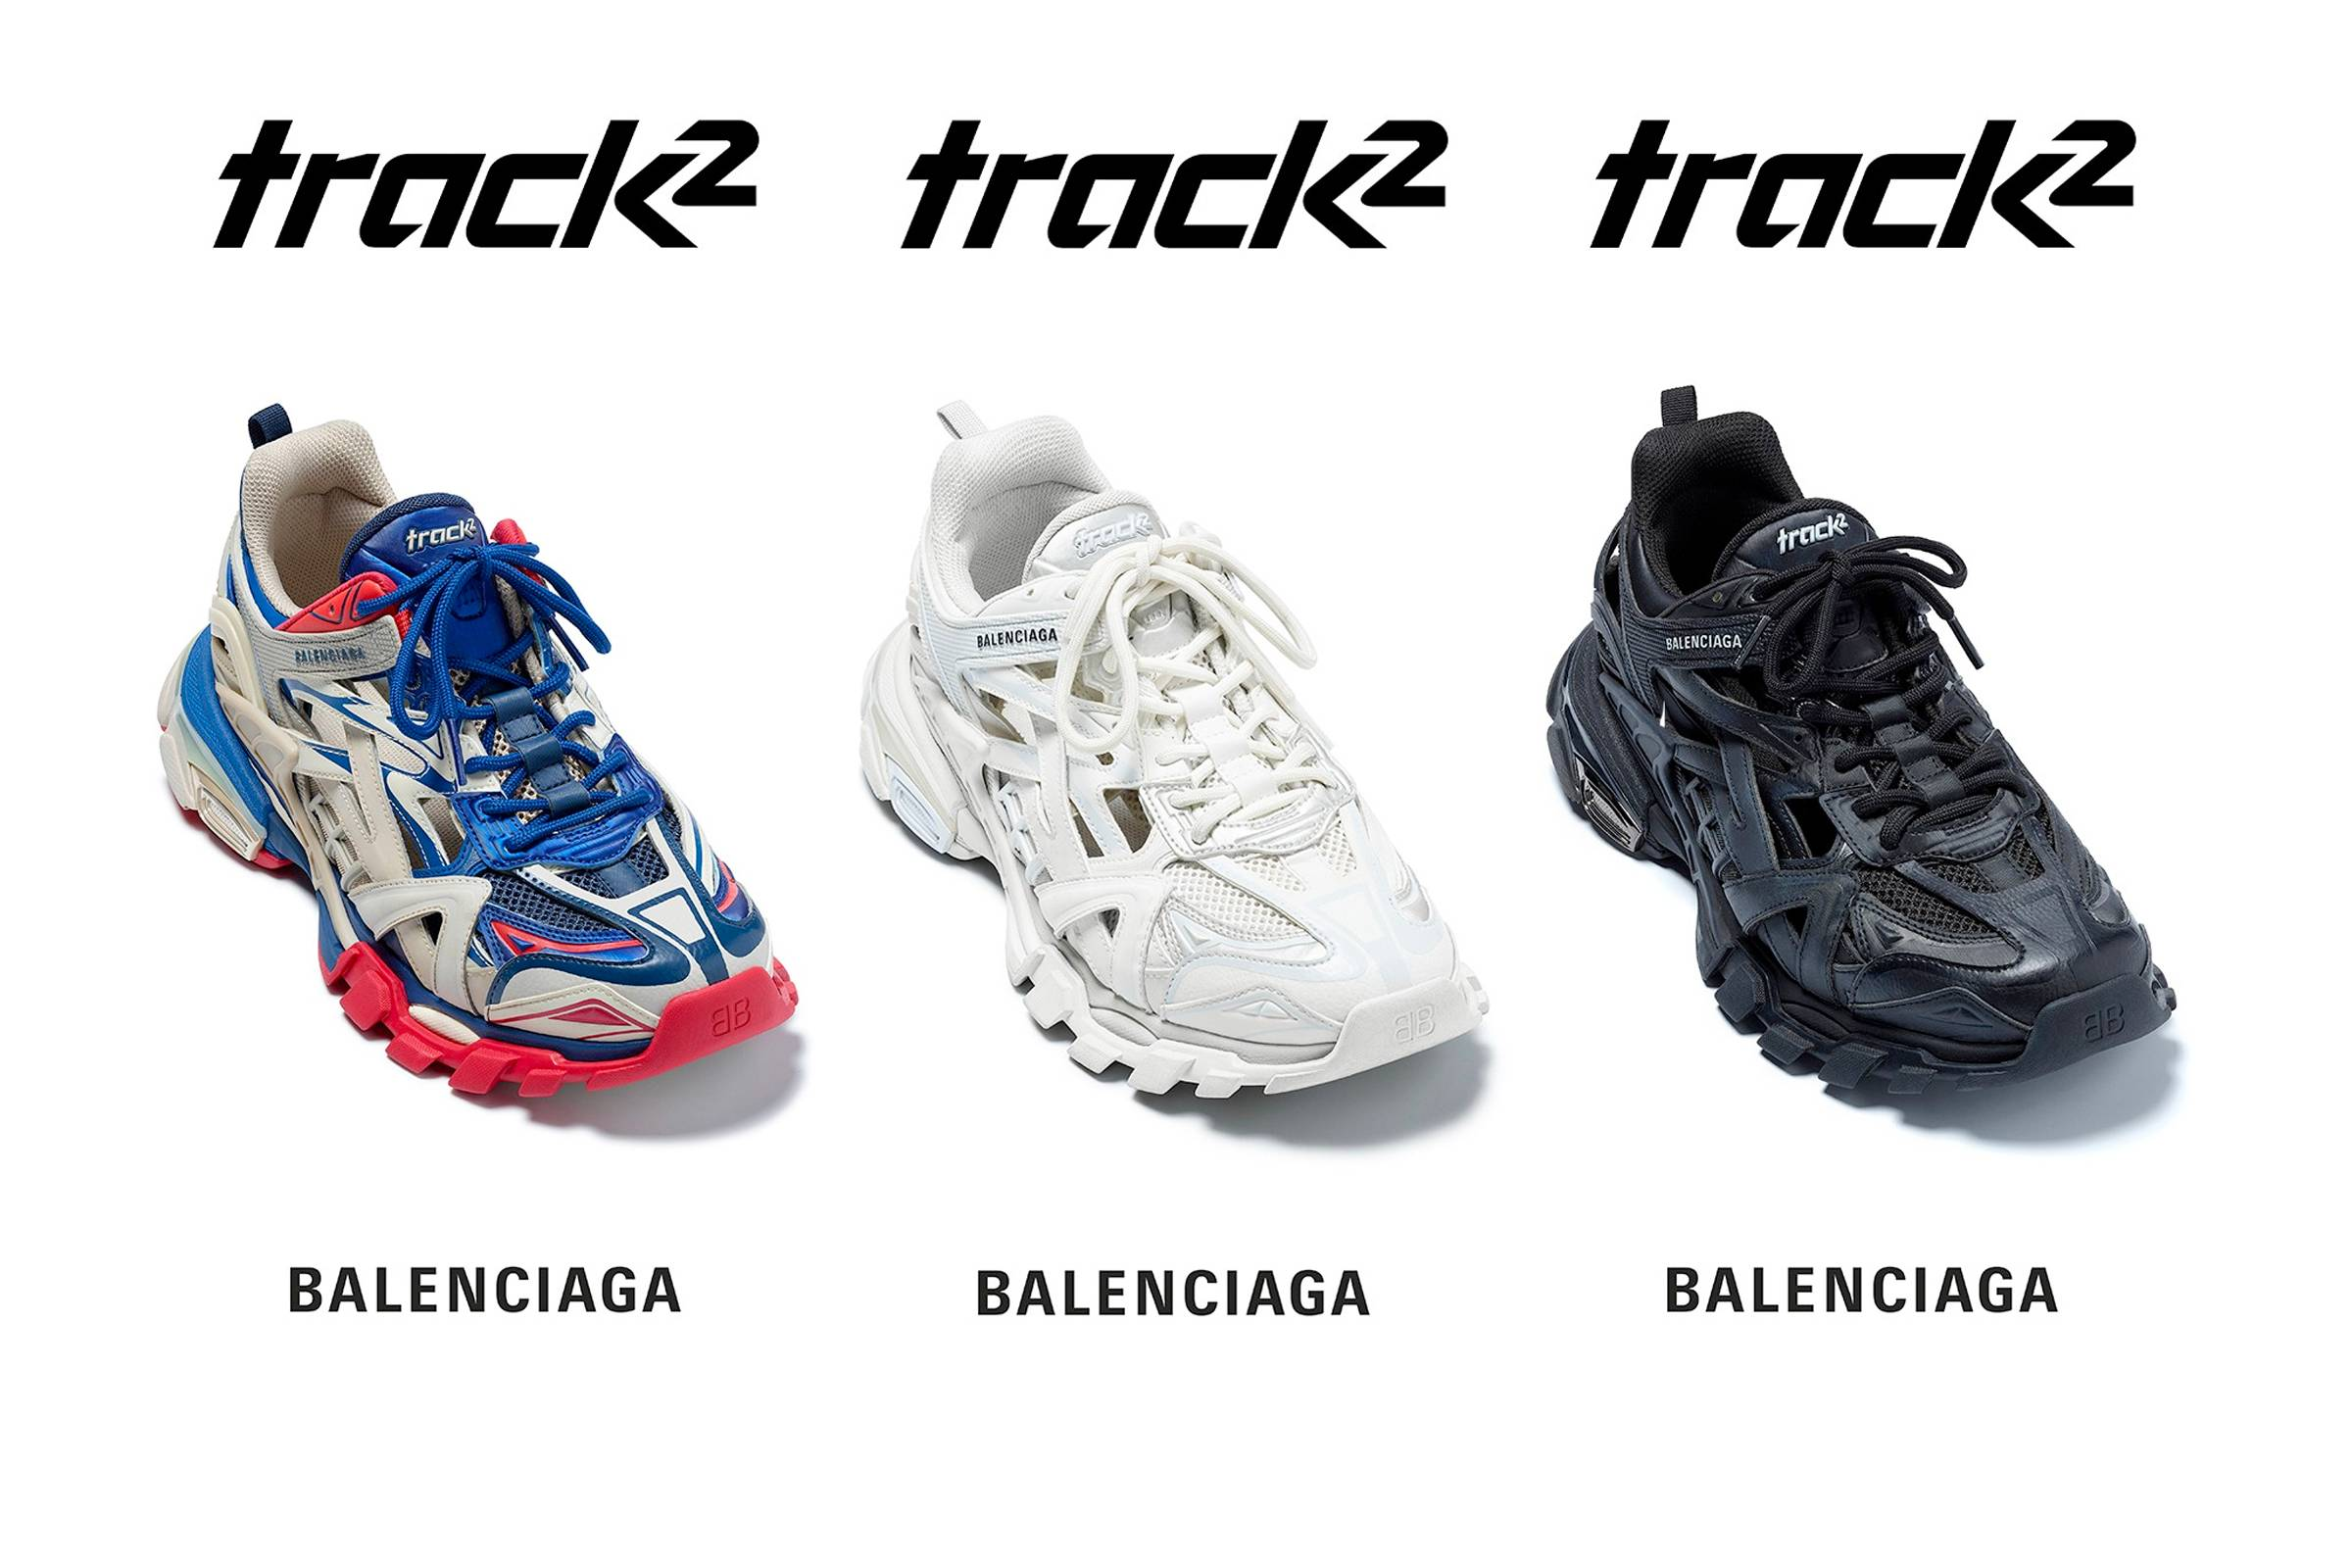 Balenciaga Debuts The All New Track 2 Sneaker Grailed